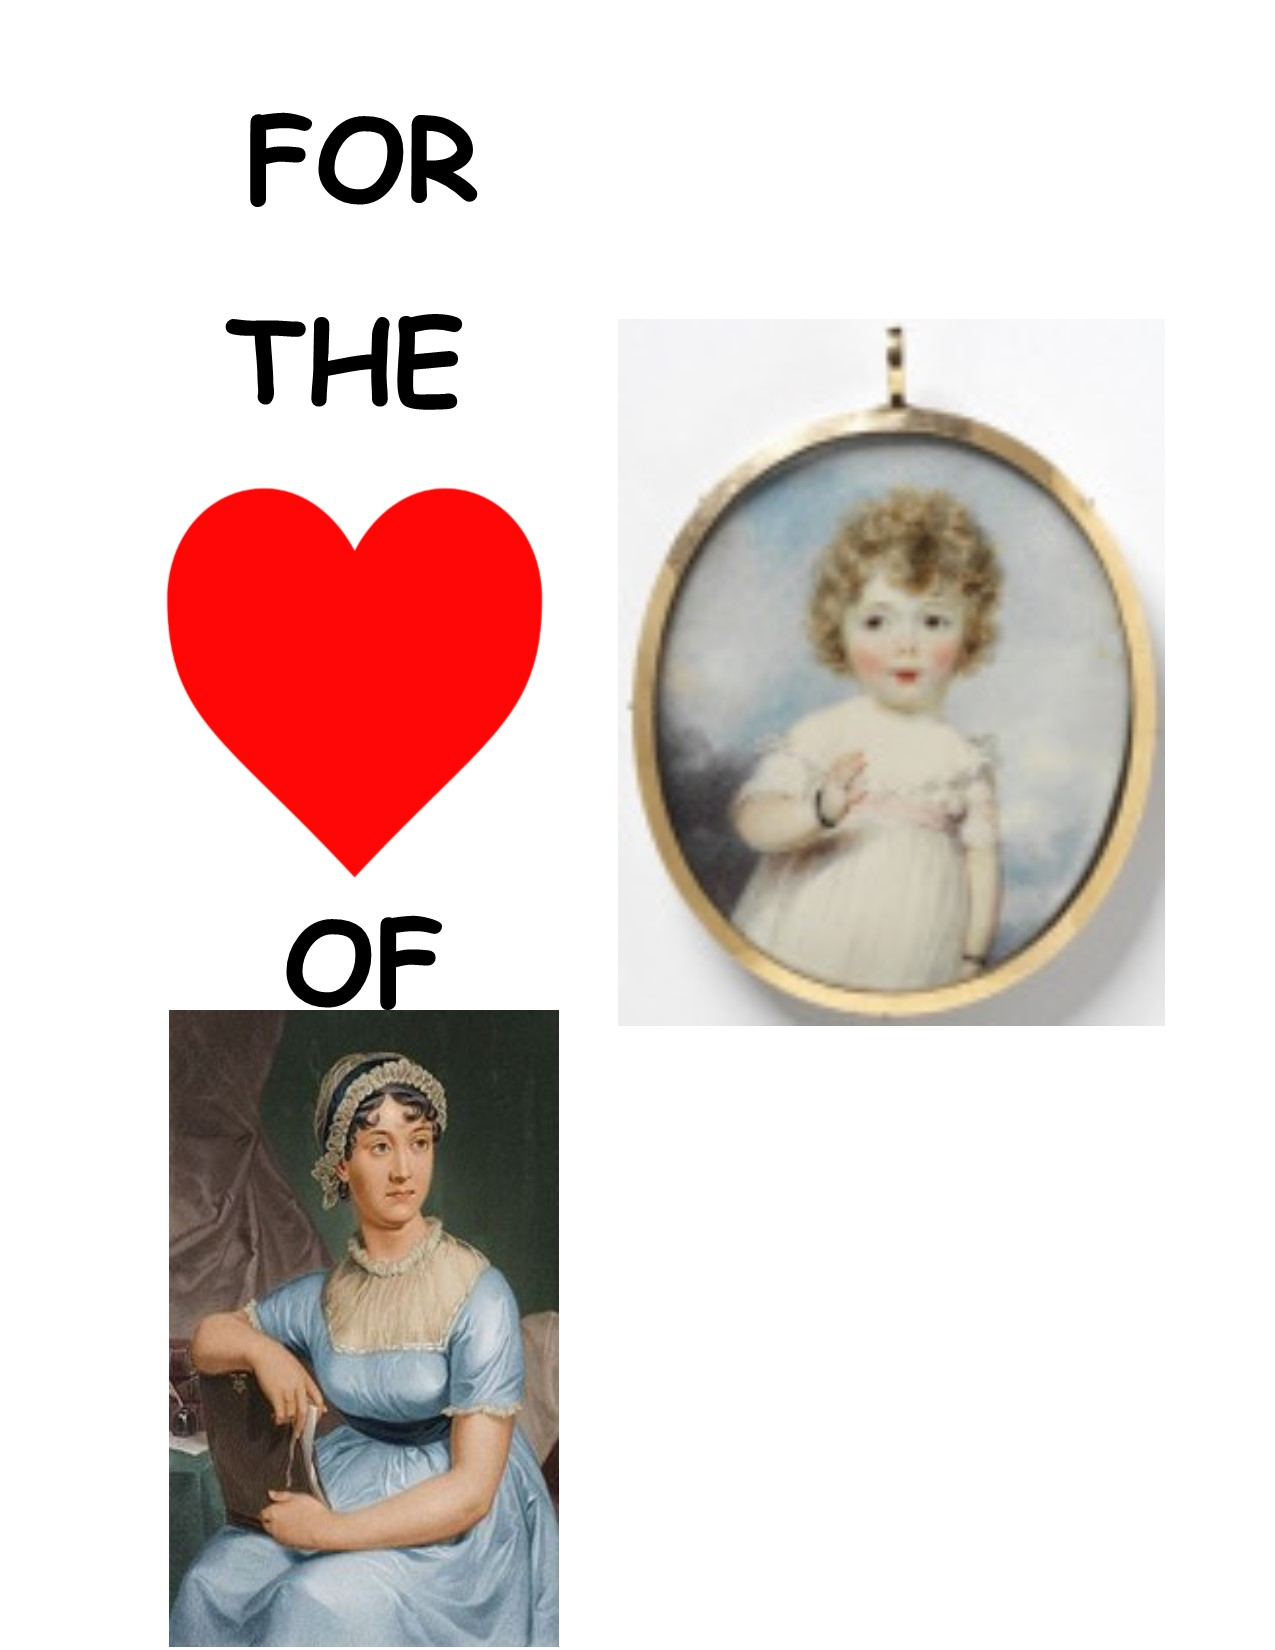 Shades of Jane Austen